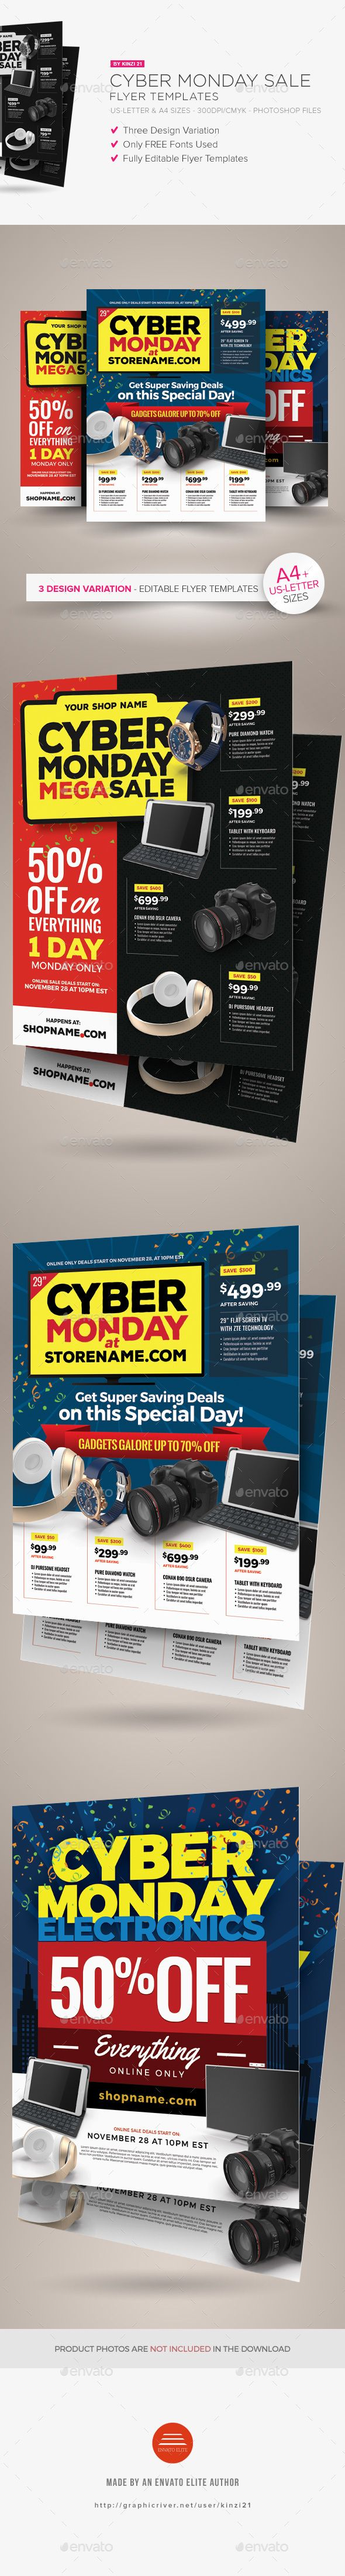 Cyber Monday Sale Flyer Templates  — PSD Template #deal #cyber monday • Download ➝ https://graphicriver.net/item/cyber-monday-sale-flyer-templates/18375876?ref=pxcr